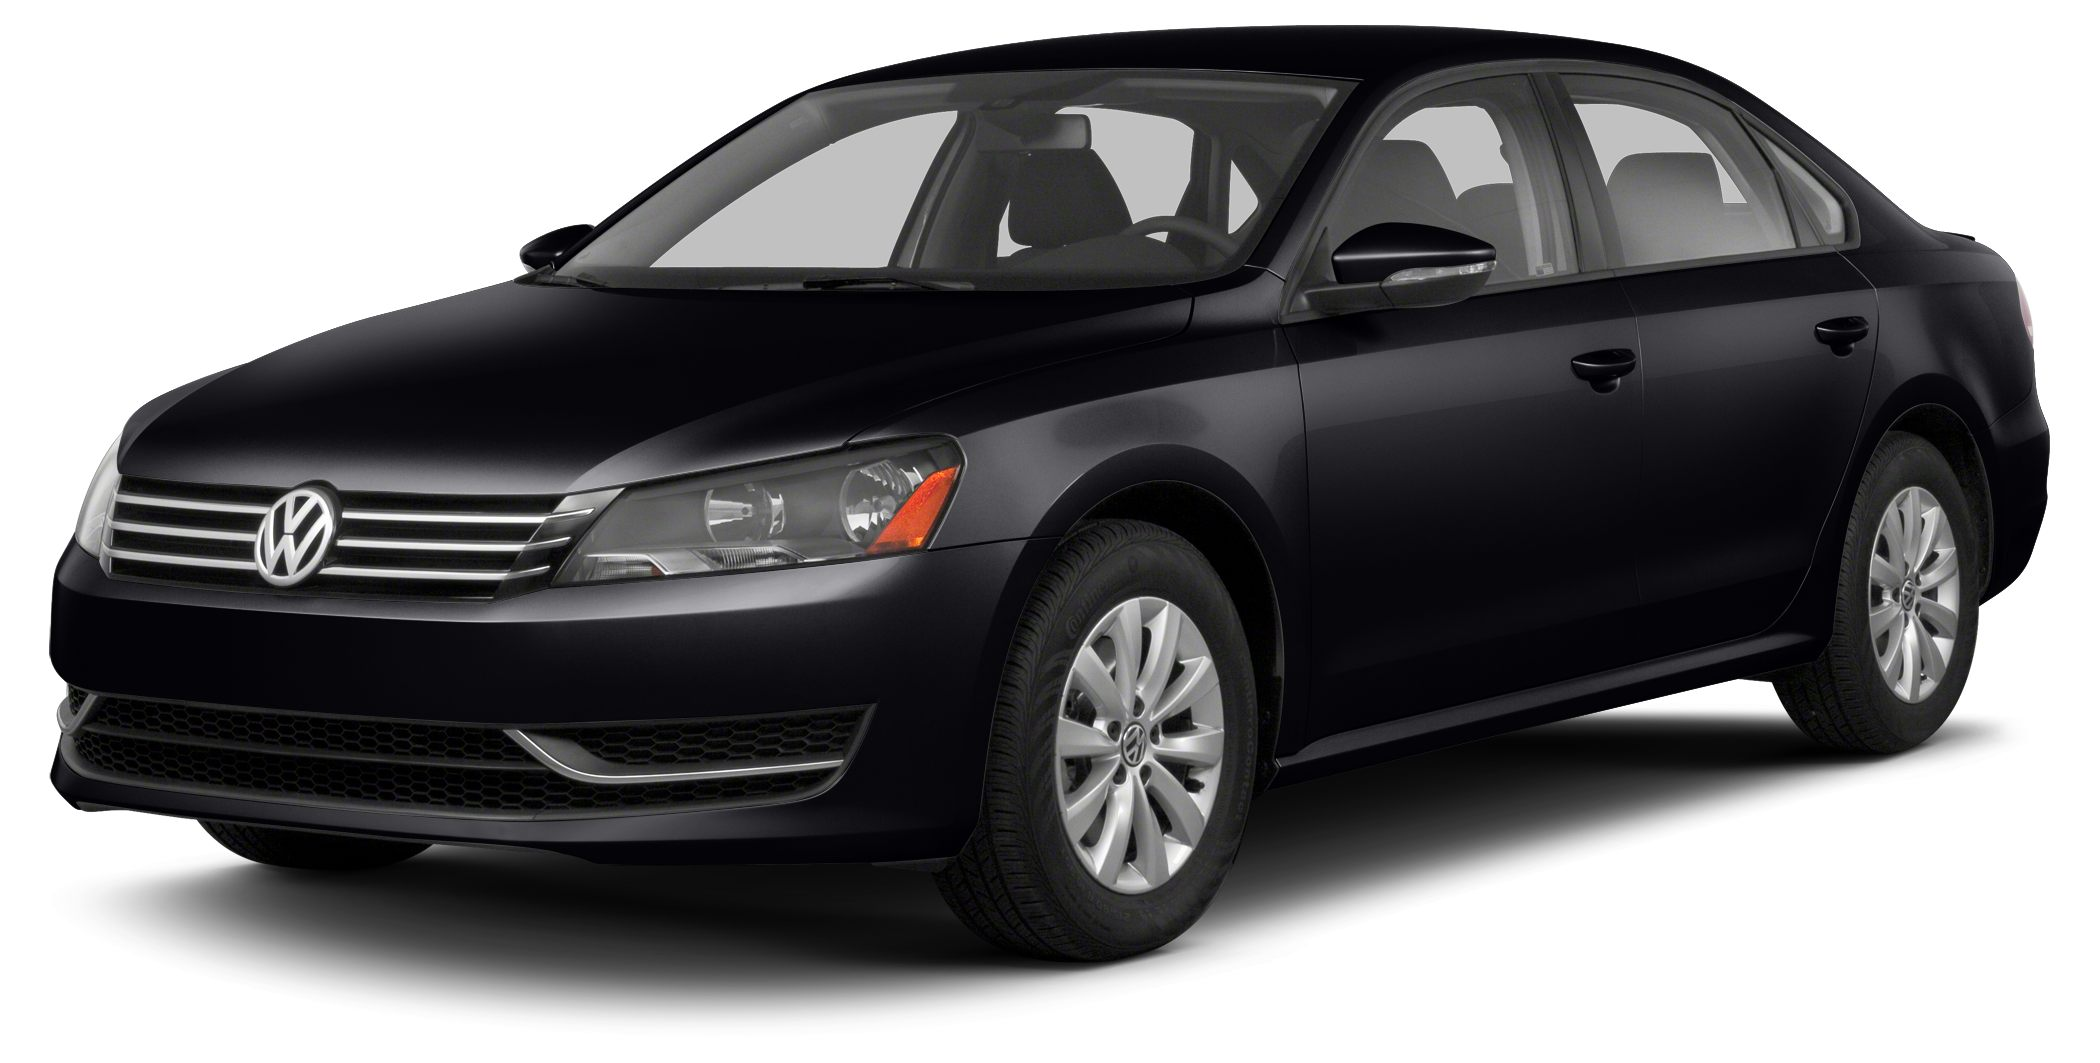 2013 Volkswagen Passat 25 S OUR PRICESYoure probably wondering why our prices are so much lower